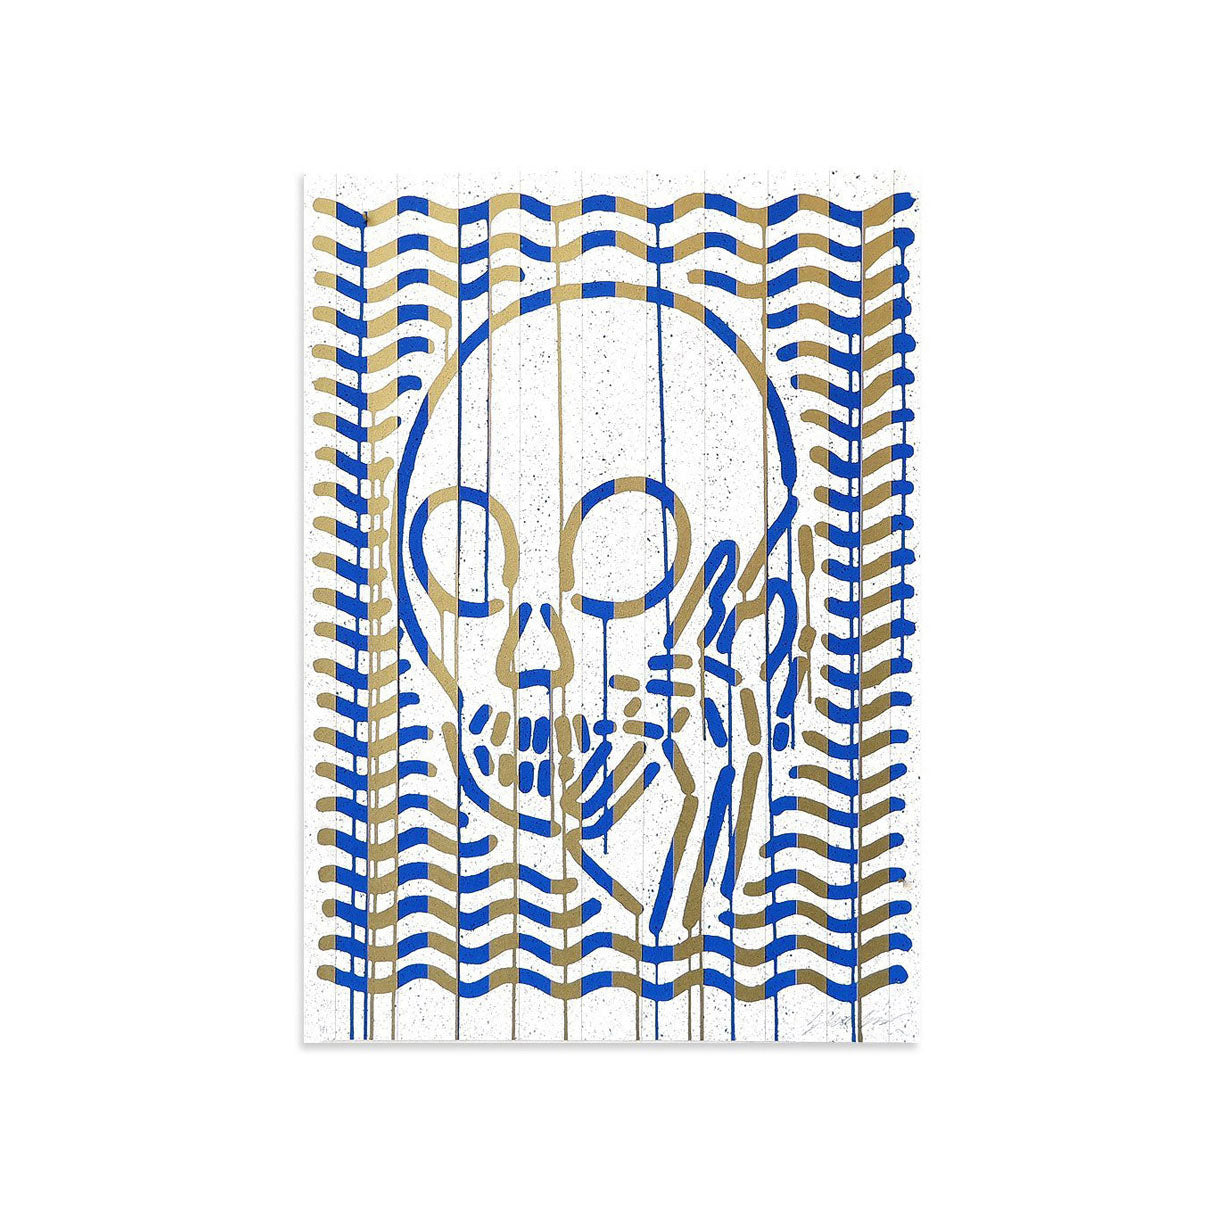 MOP Blue & Gold AE/1 by Skullphone | Artist Edition | Poster Child Prints